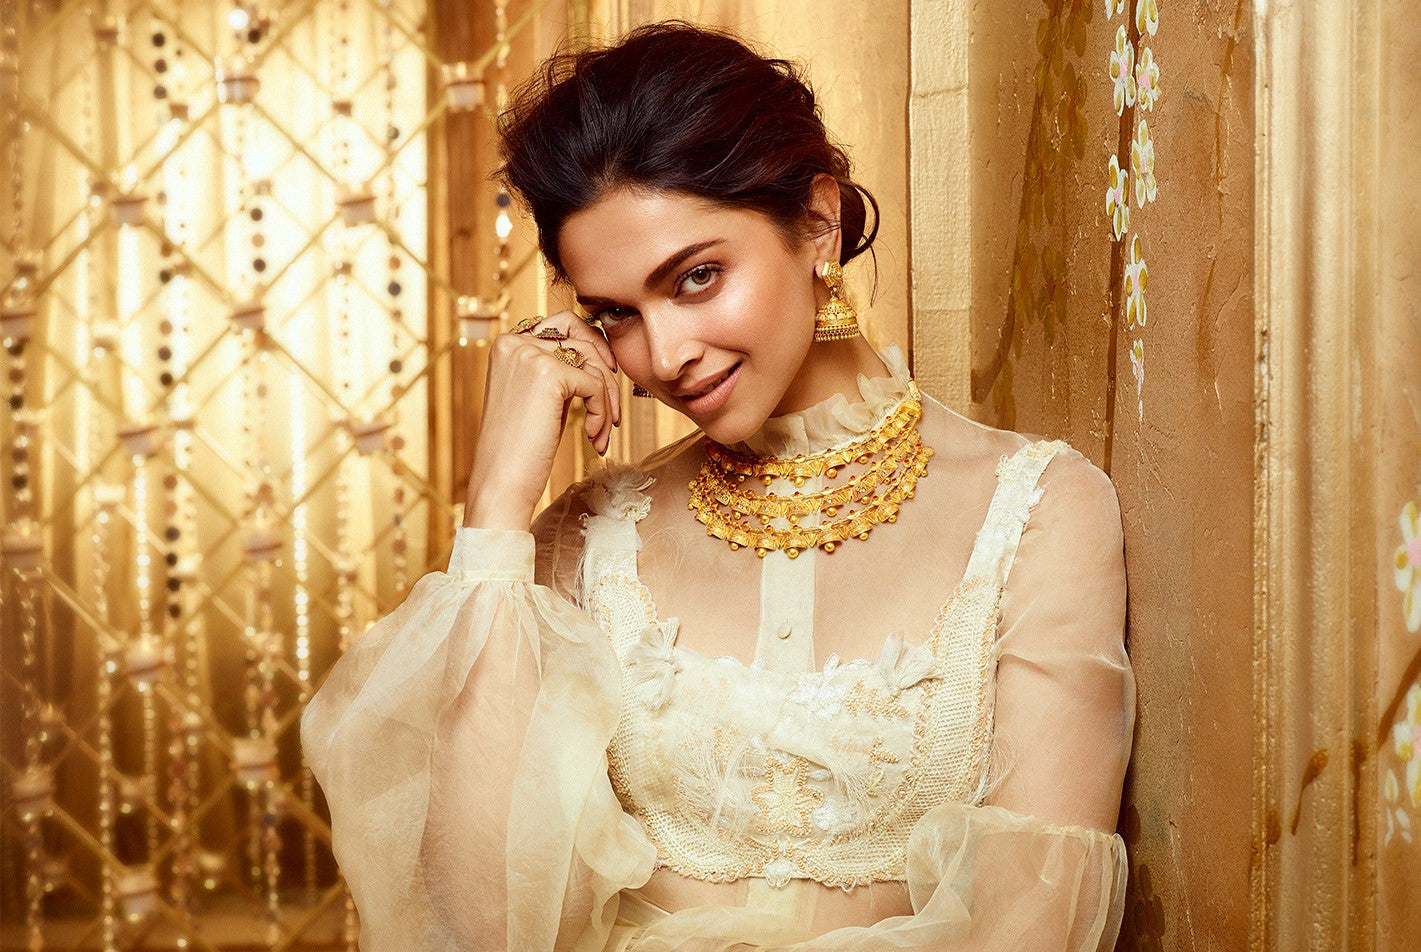 Shine bright like a diamond : How to pair your Indian jewellery with western outfits